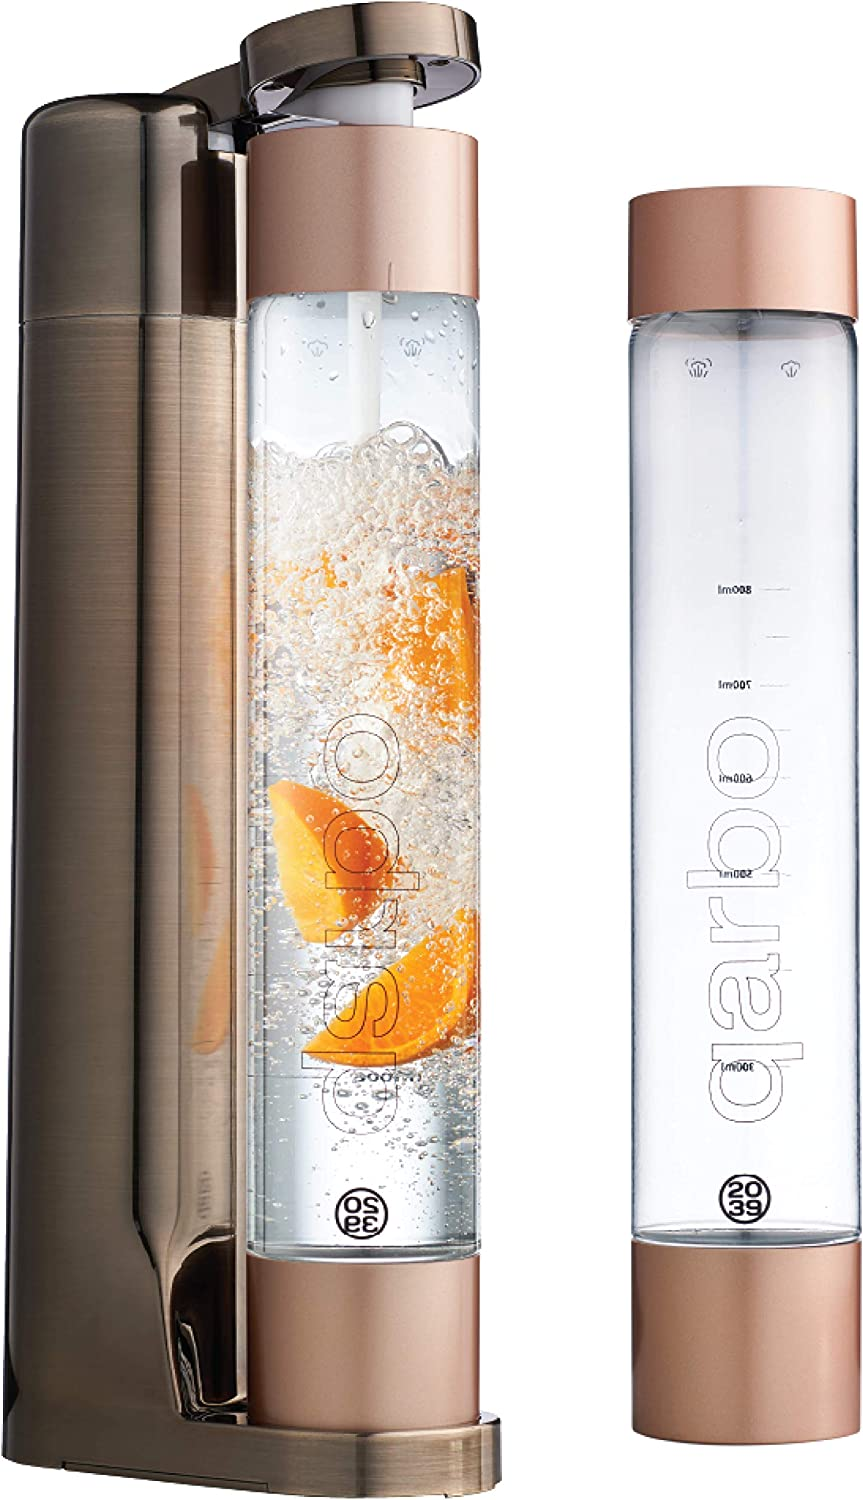 twenty39 qarbo Sparkling Water Maker and Fruit Infuser - Premium Carbonation Machine with Two 1L BPA Free Bottles - Infuses Flavor while Carbonating Beverages, Use Standard Gas Cylinder (not included), Bronze